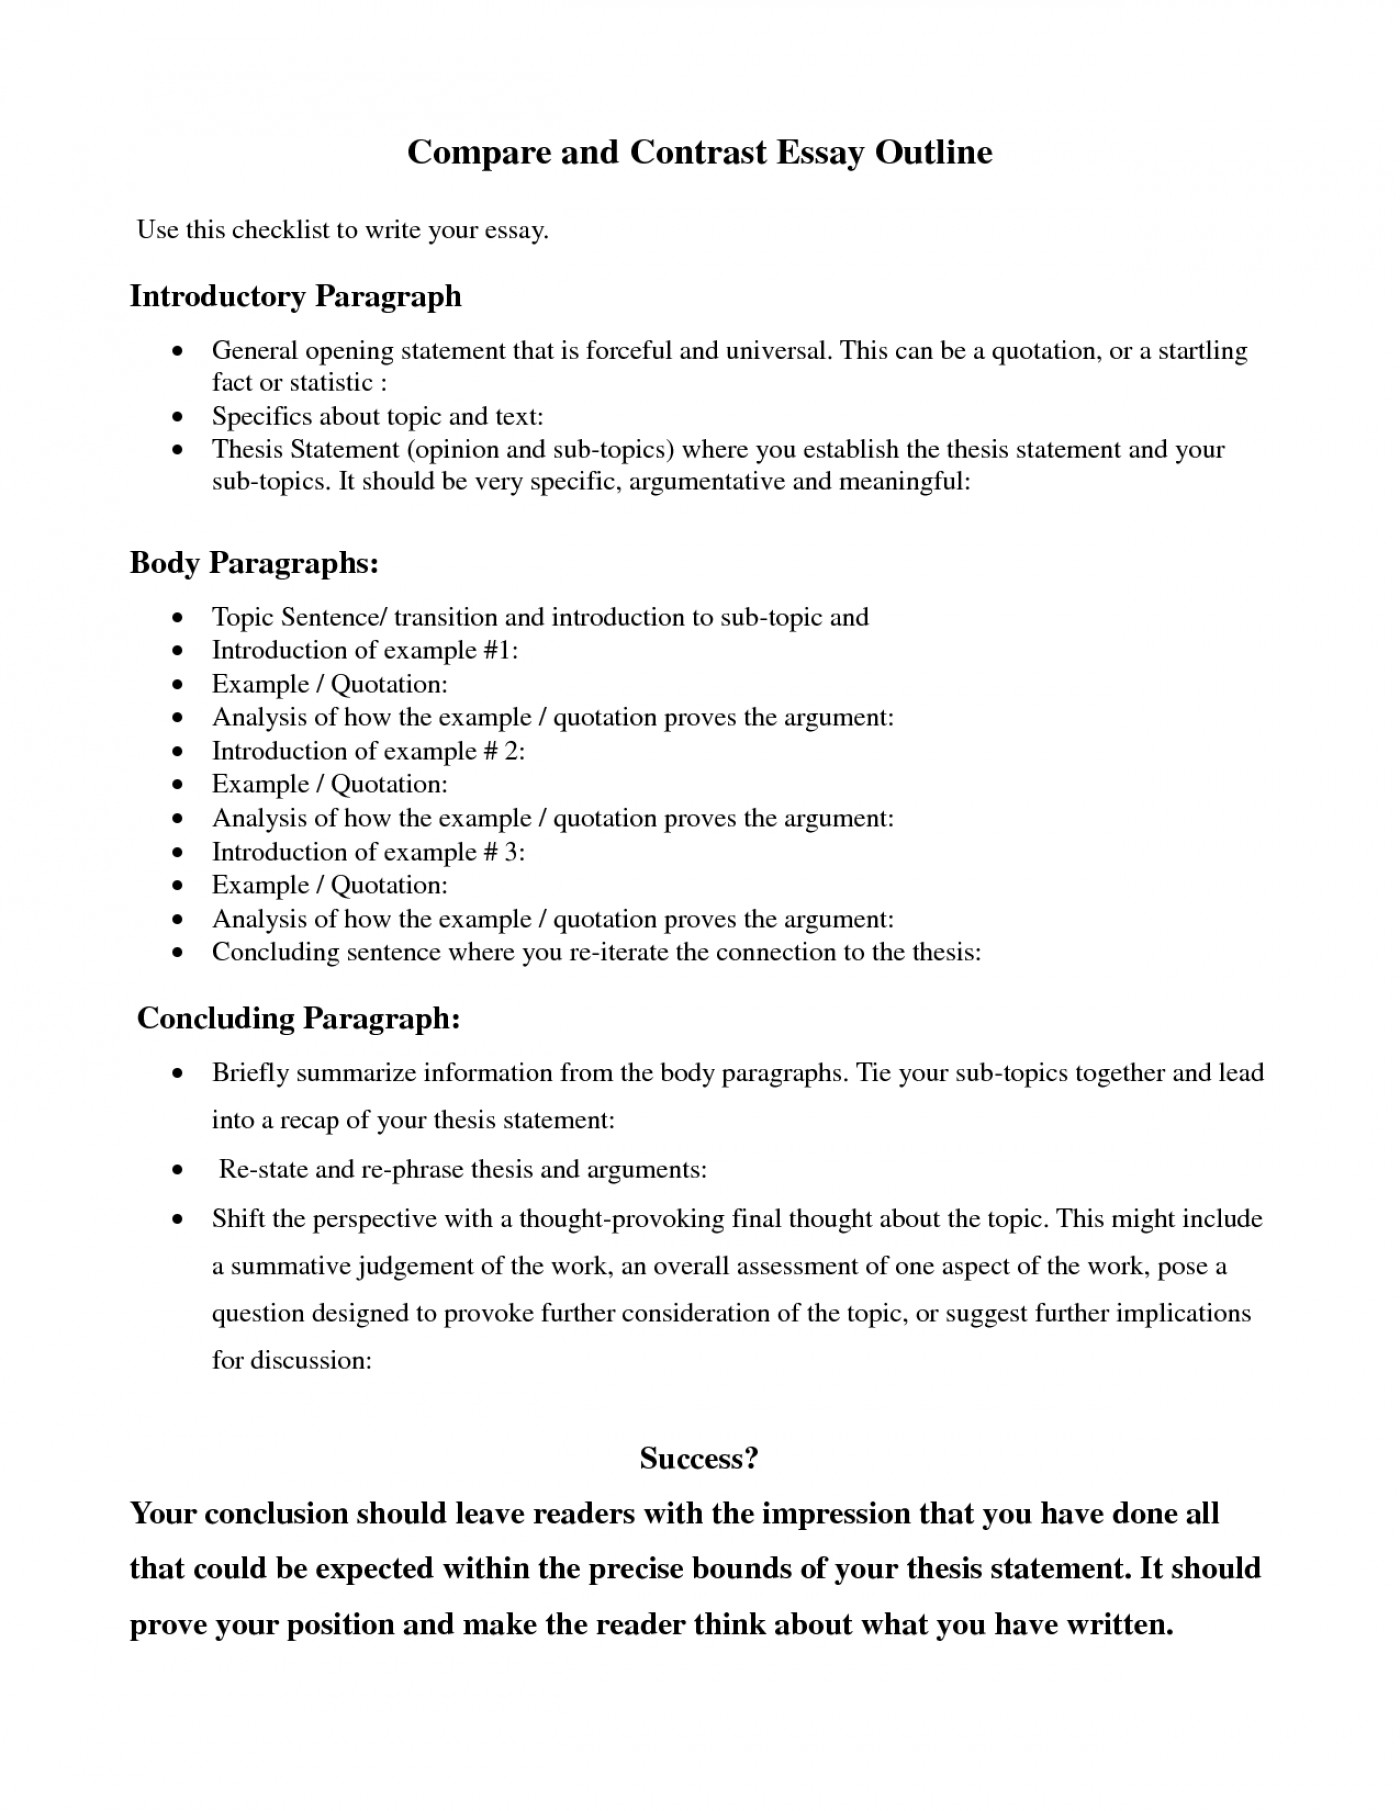 001 Essay Example How To Write Compare And Contrast Outstanding A Outline Comparison Ppt Middle School 1400